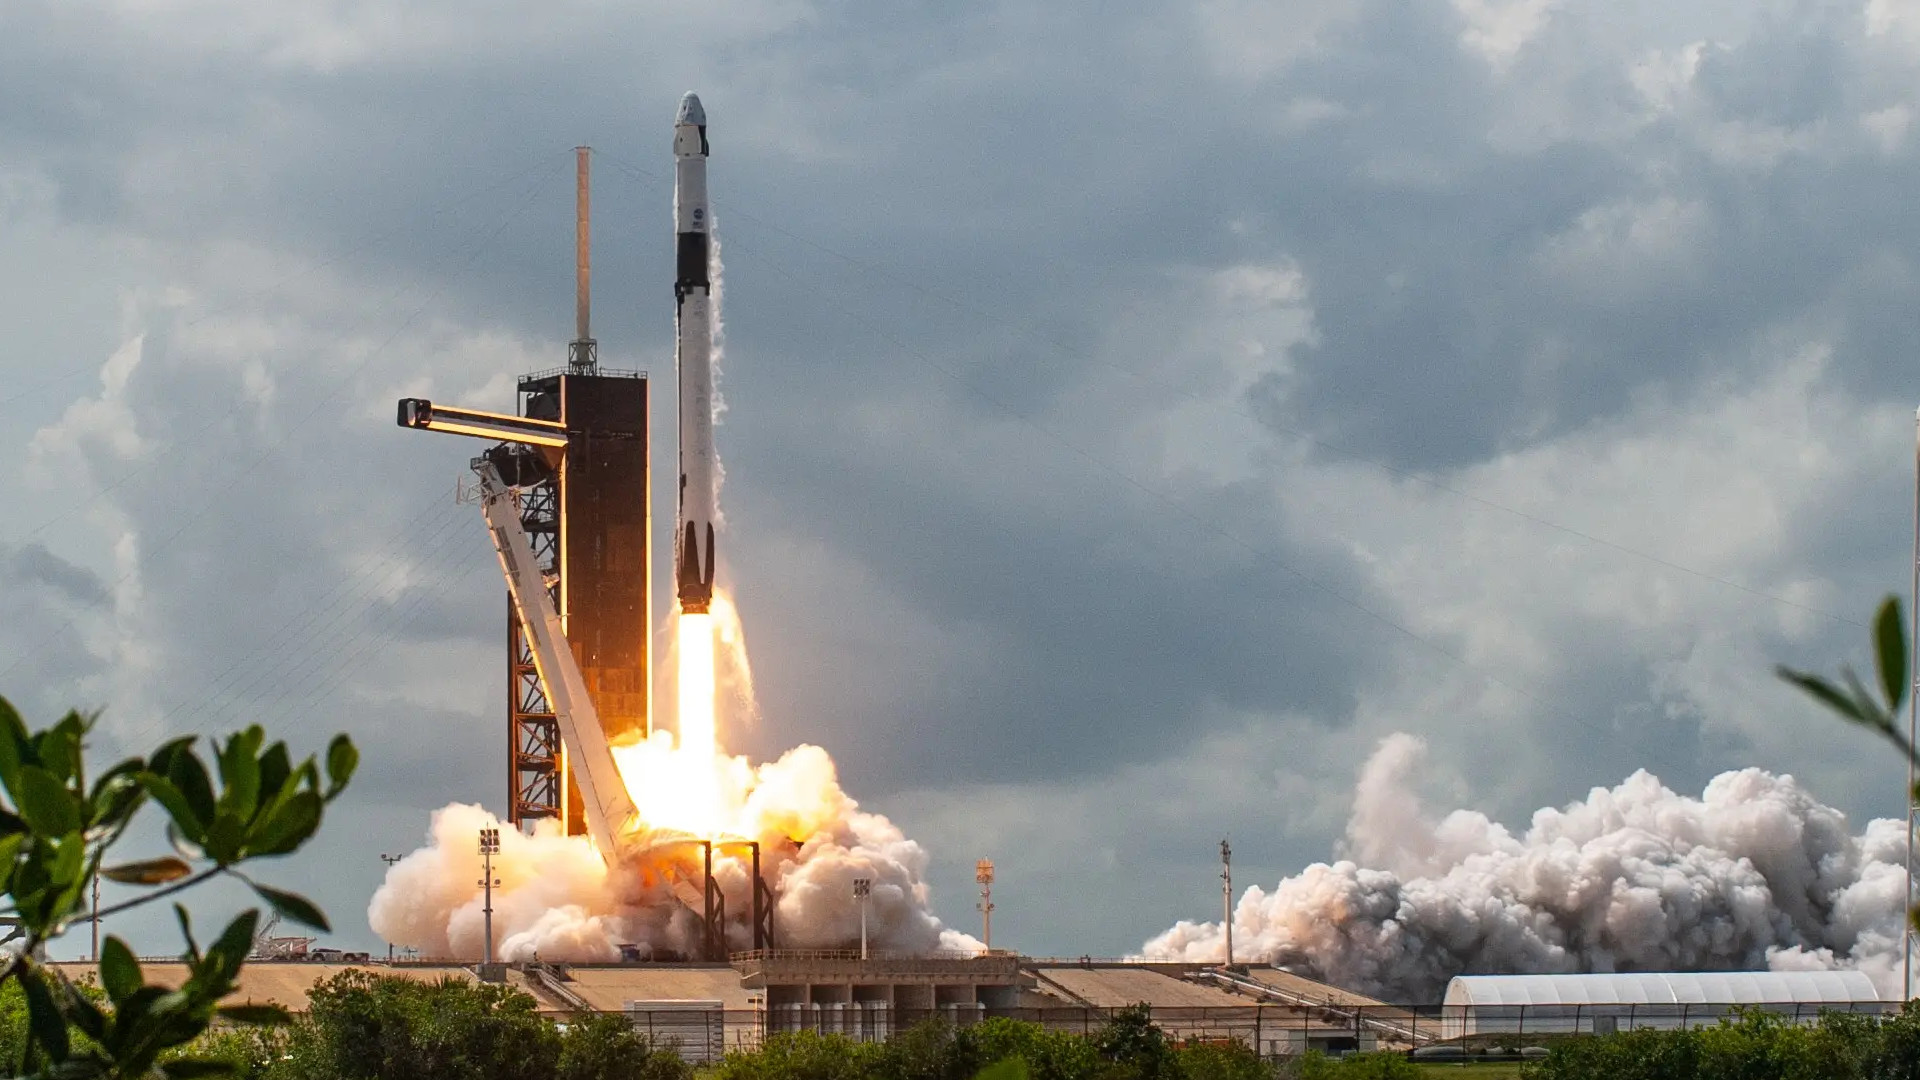 spacex demo 2 launch june newsletter